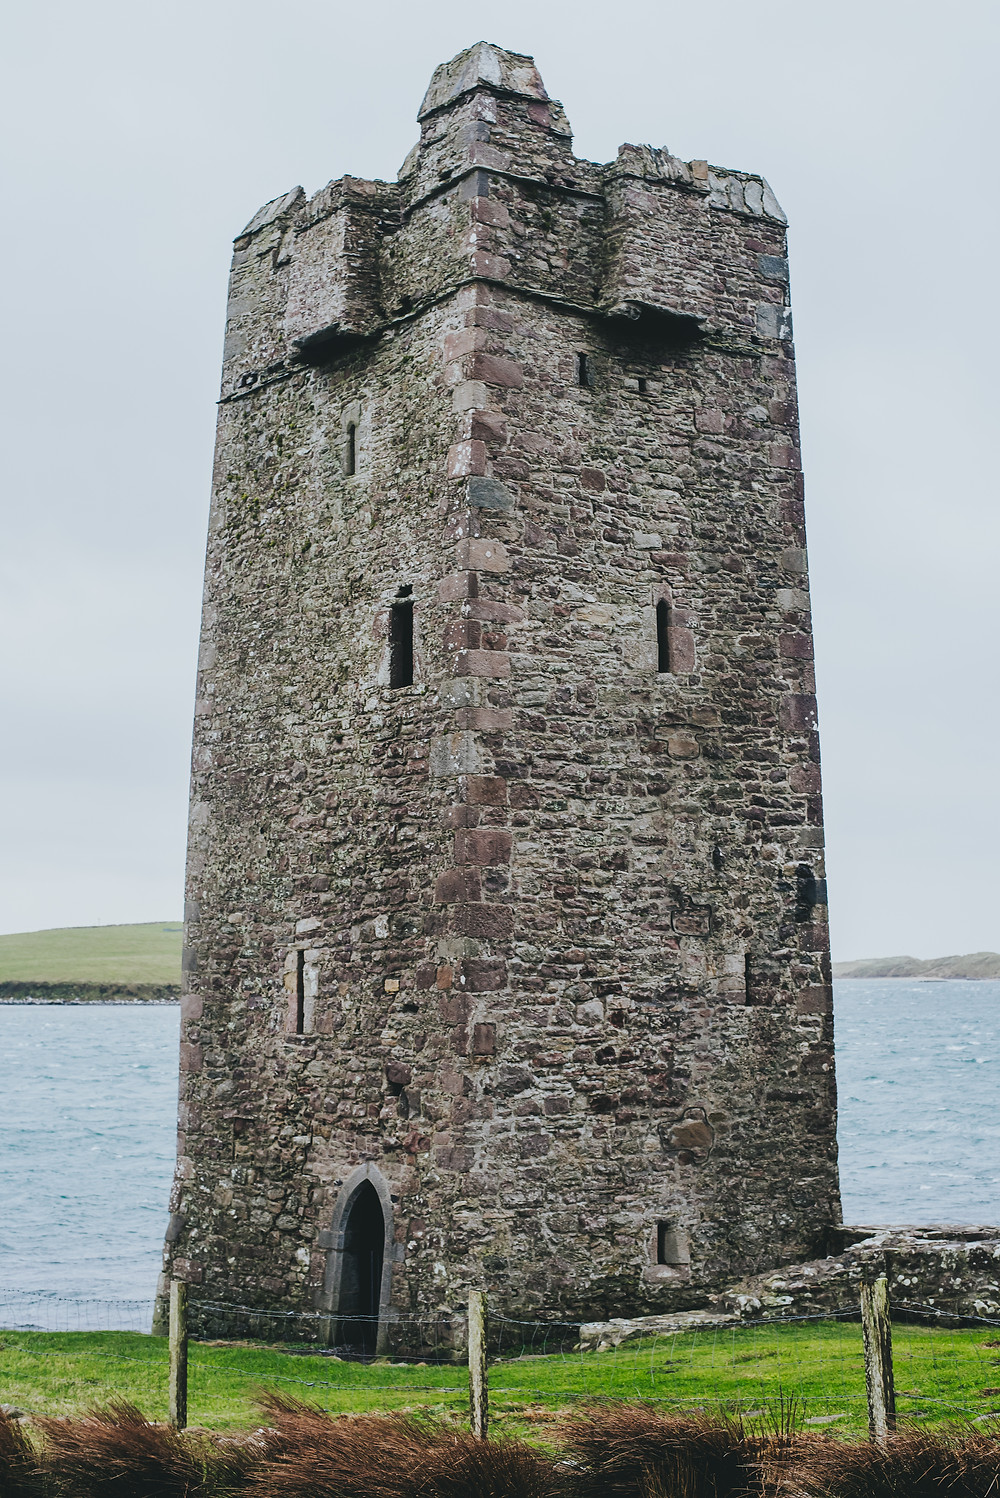 Grace O'Malley's Castle, Achill Island, Ireland